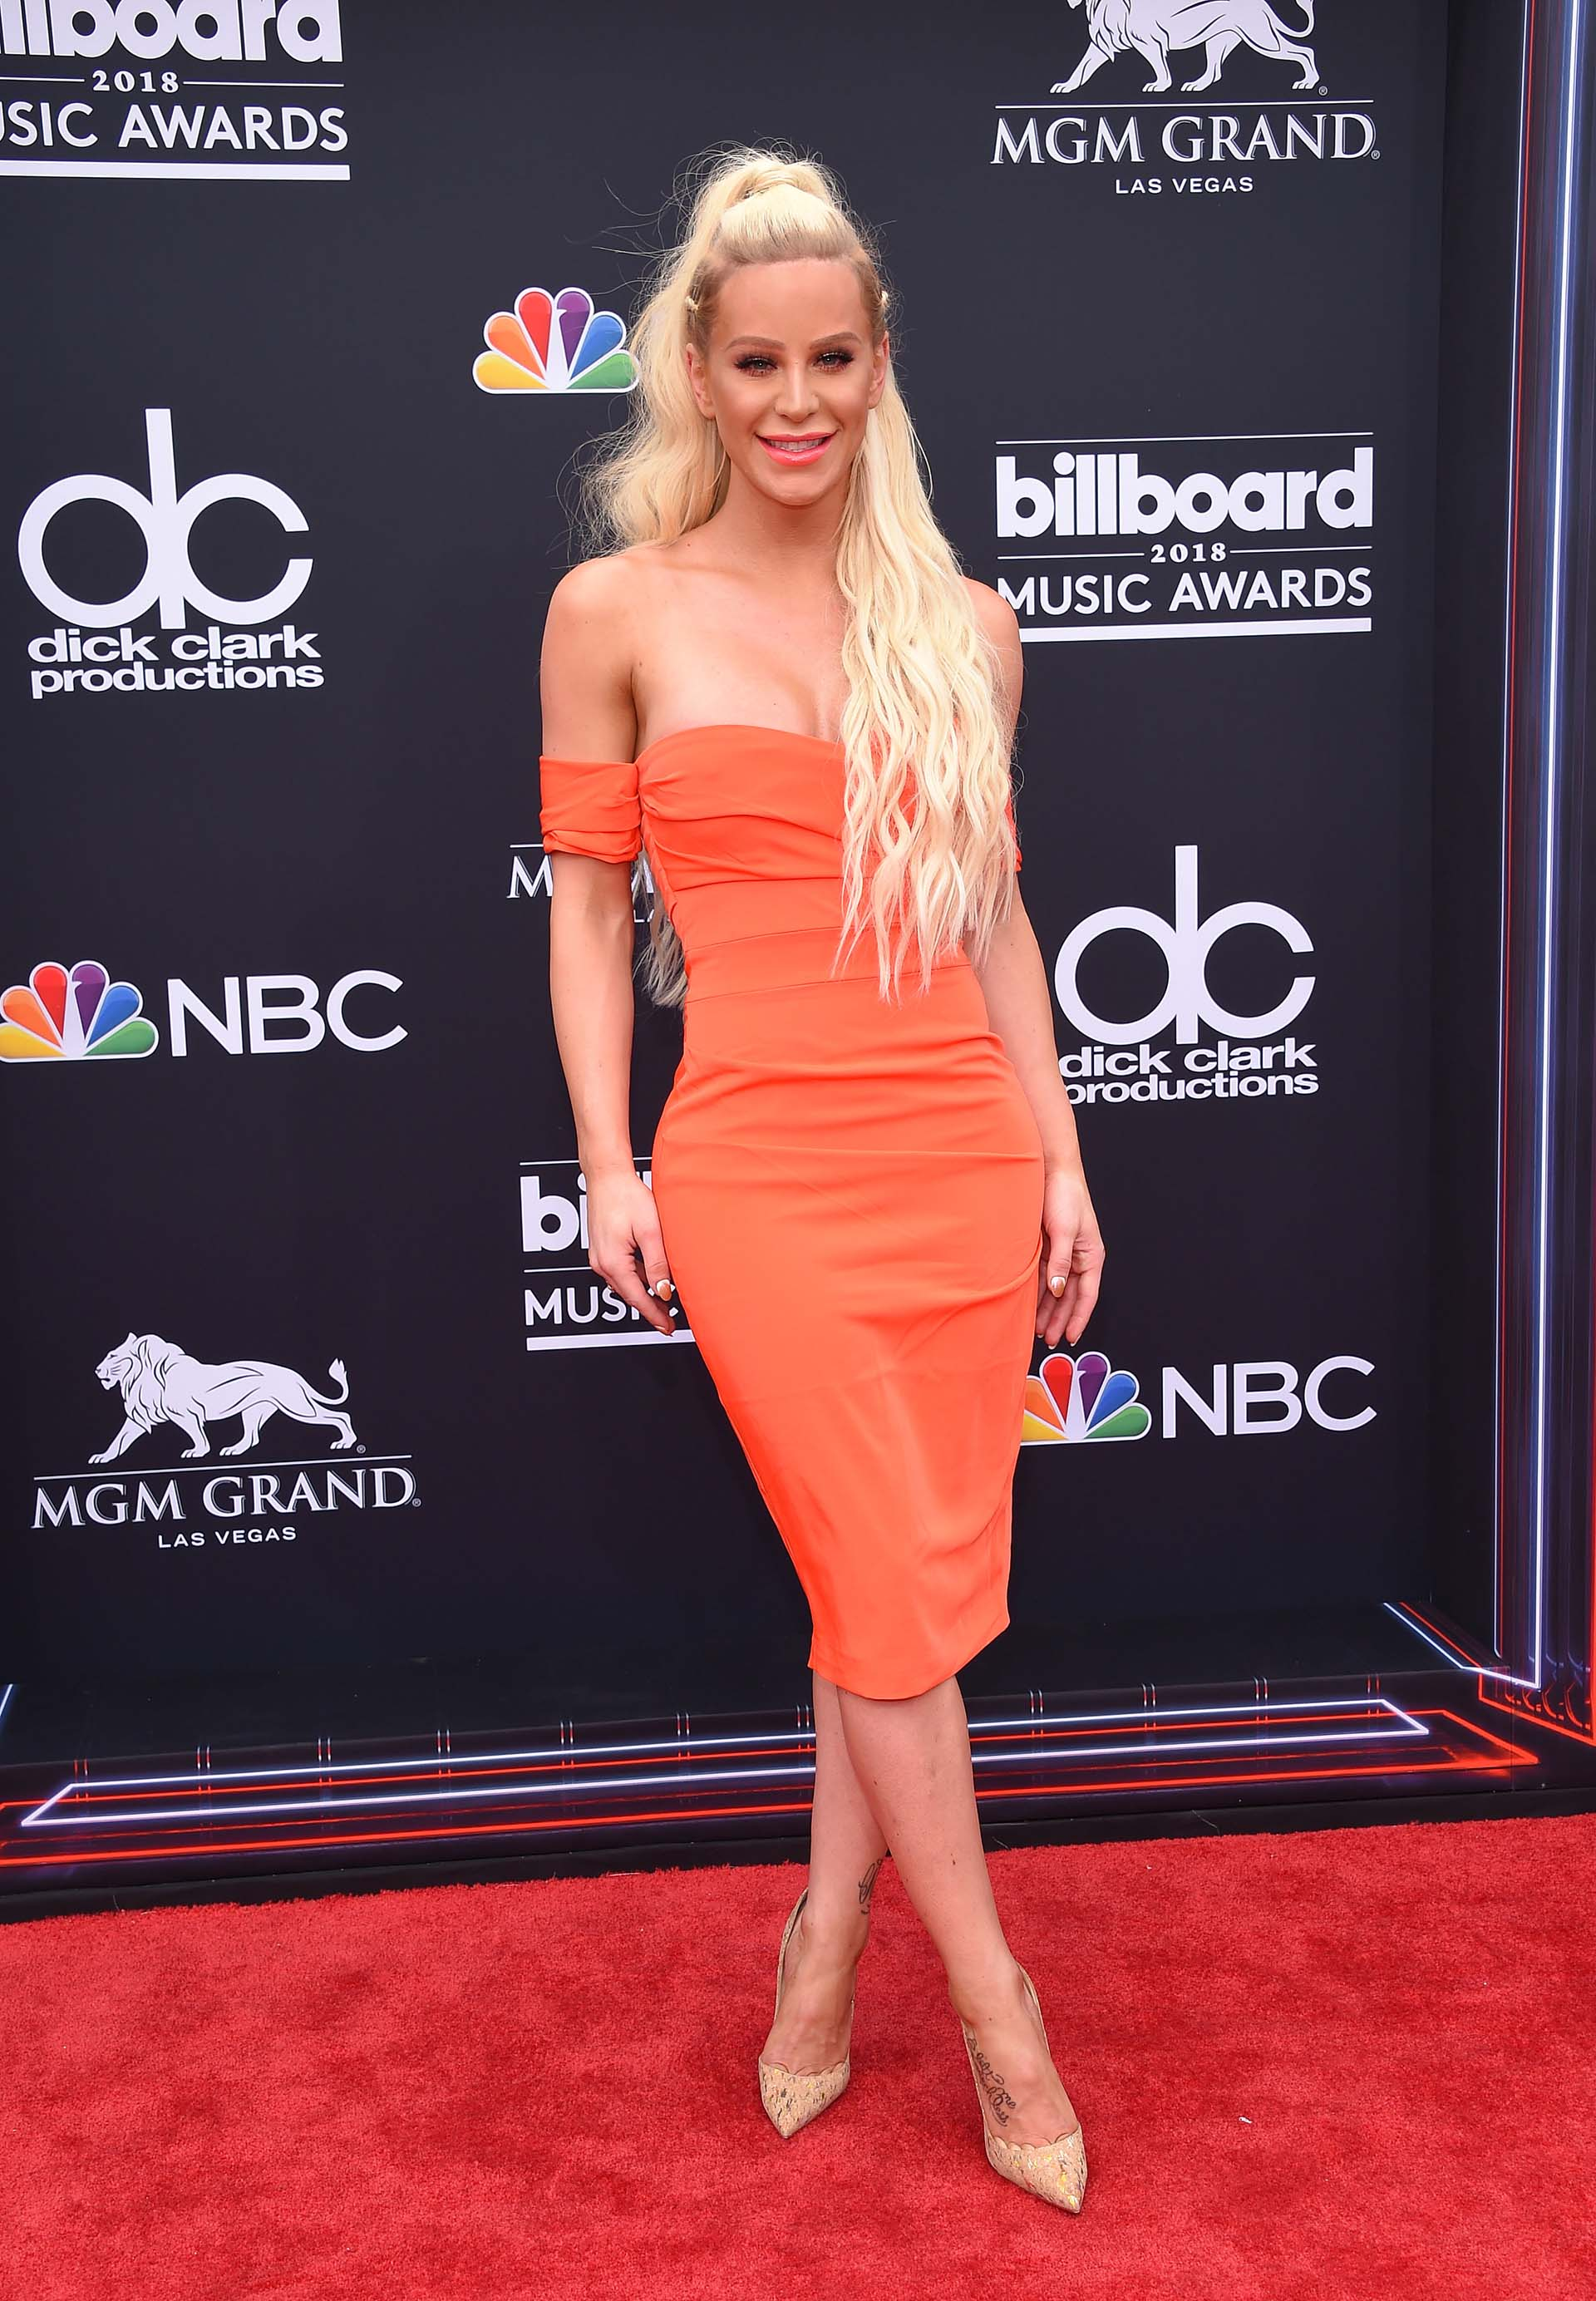 Gigi Gorgeous (AFP PHOTO / LISA O'CONNOR)